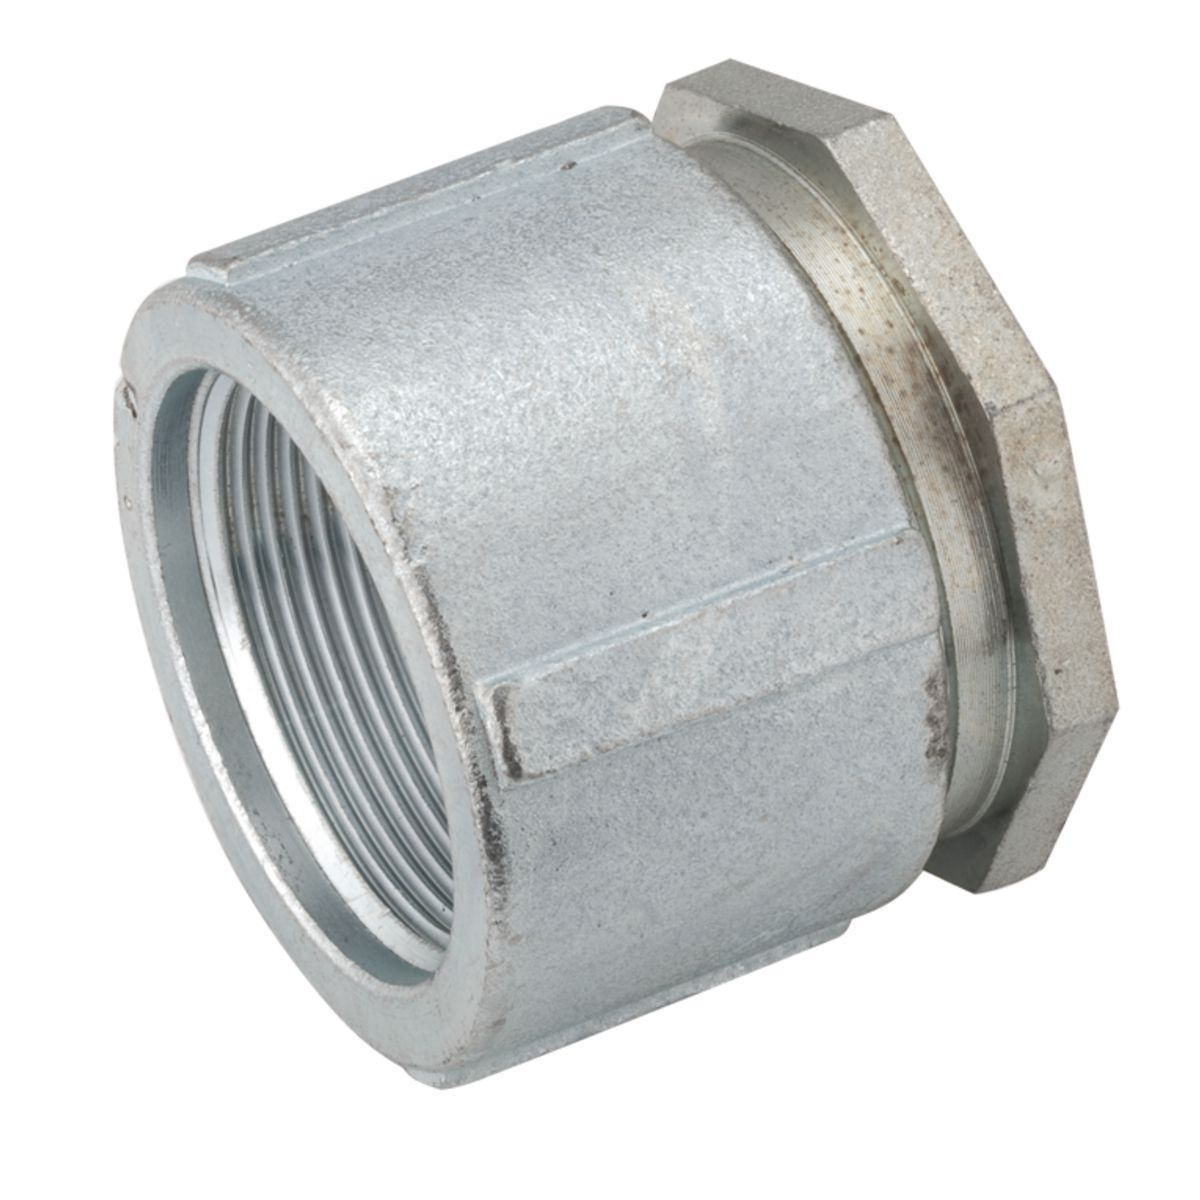 RGD/IMC COUPLING 4 IN 3PC MALL IRON